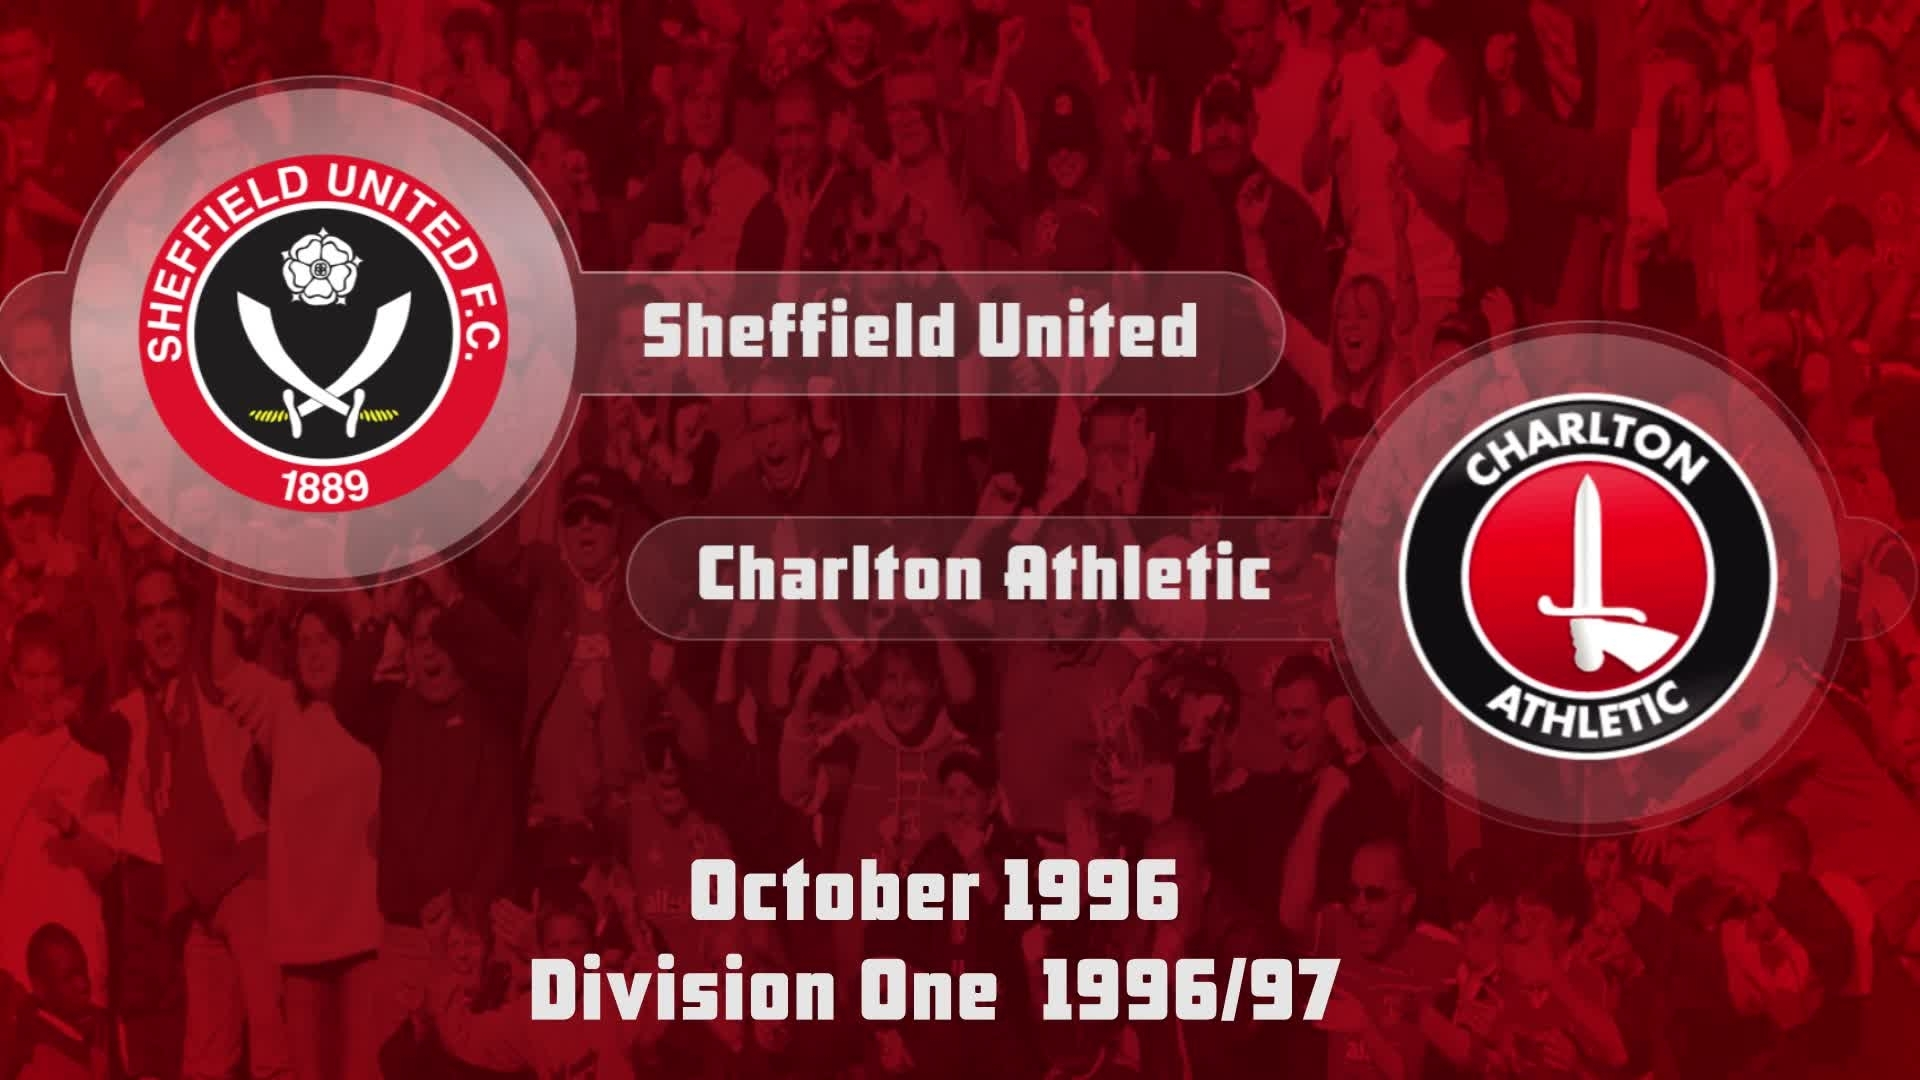 12 HIGHLIGHTS | Sheff Utd 3 Charlton 0 (Oct 1996)